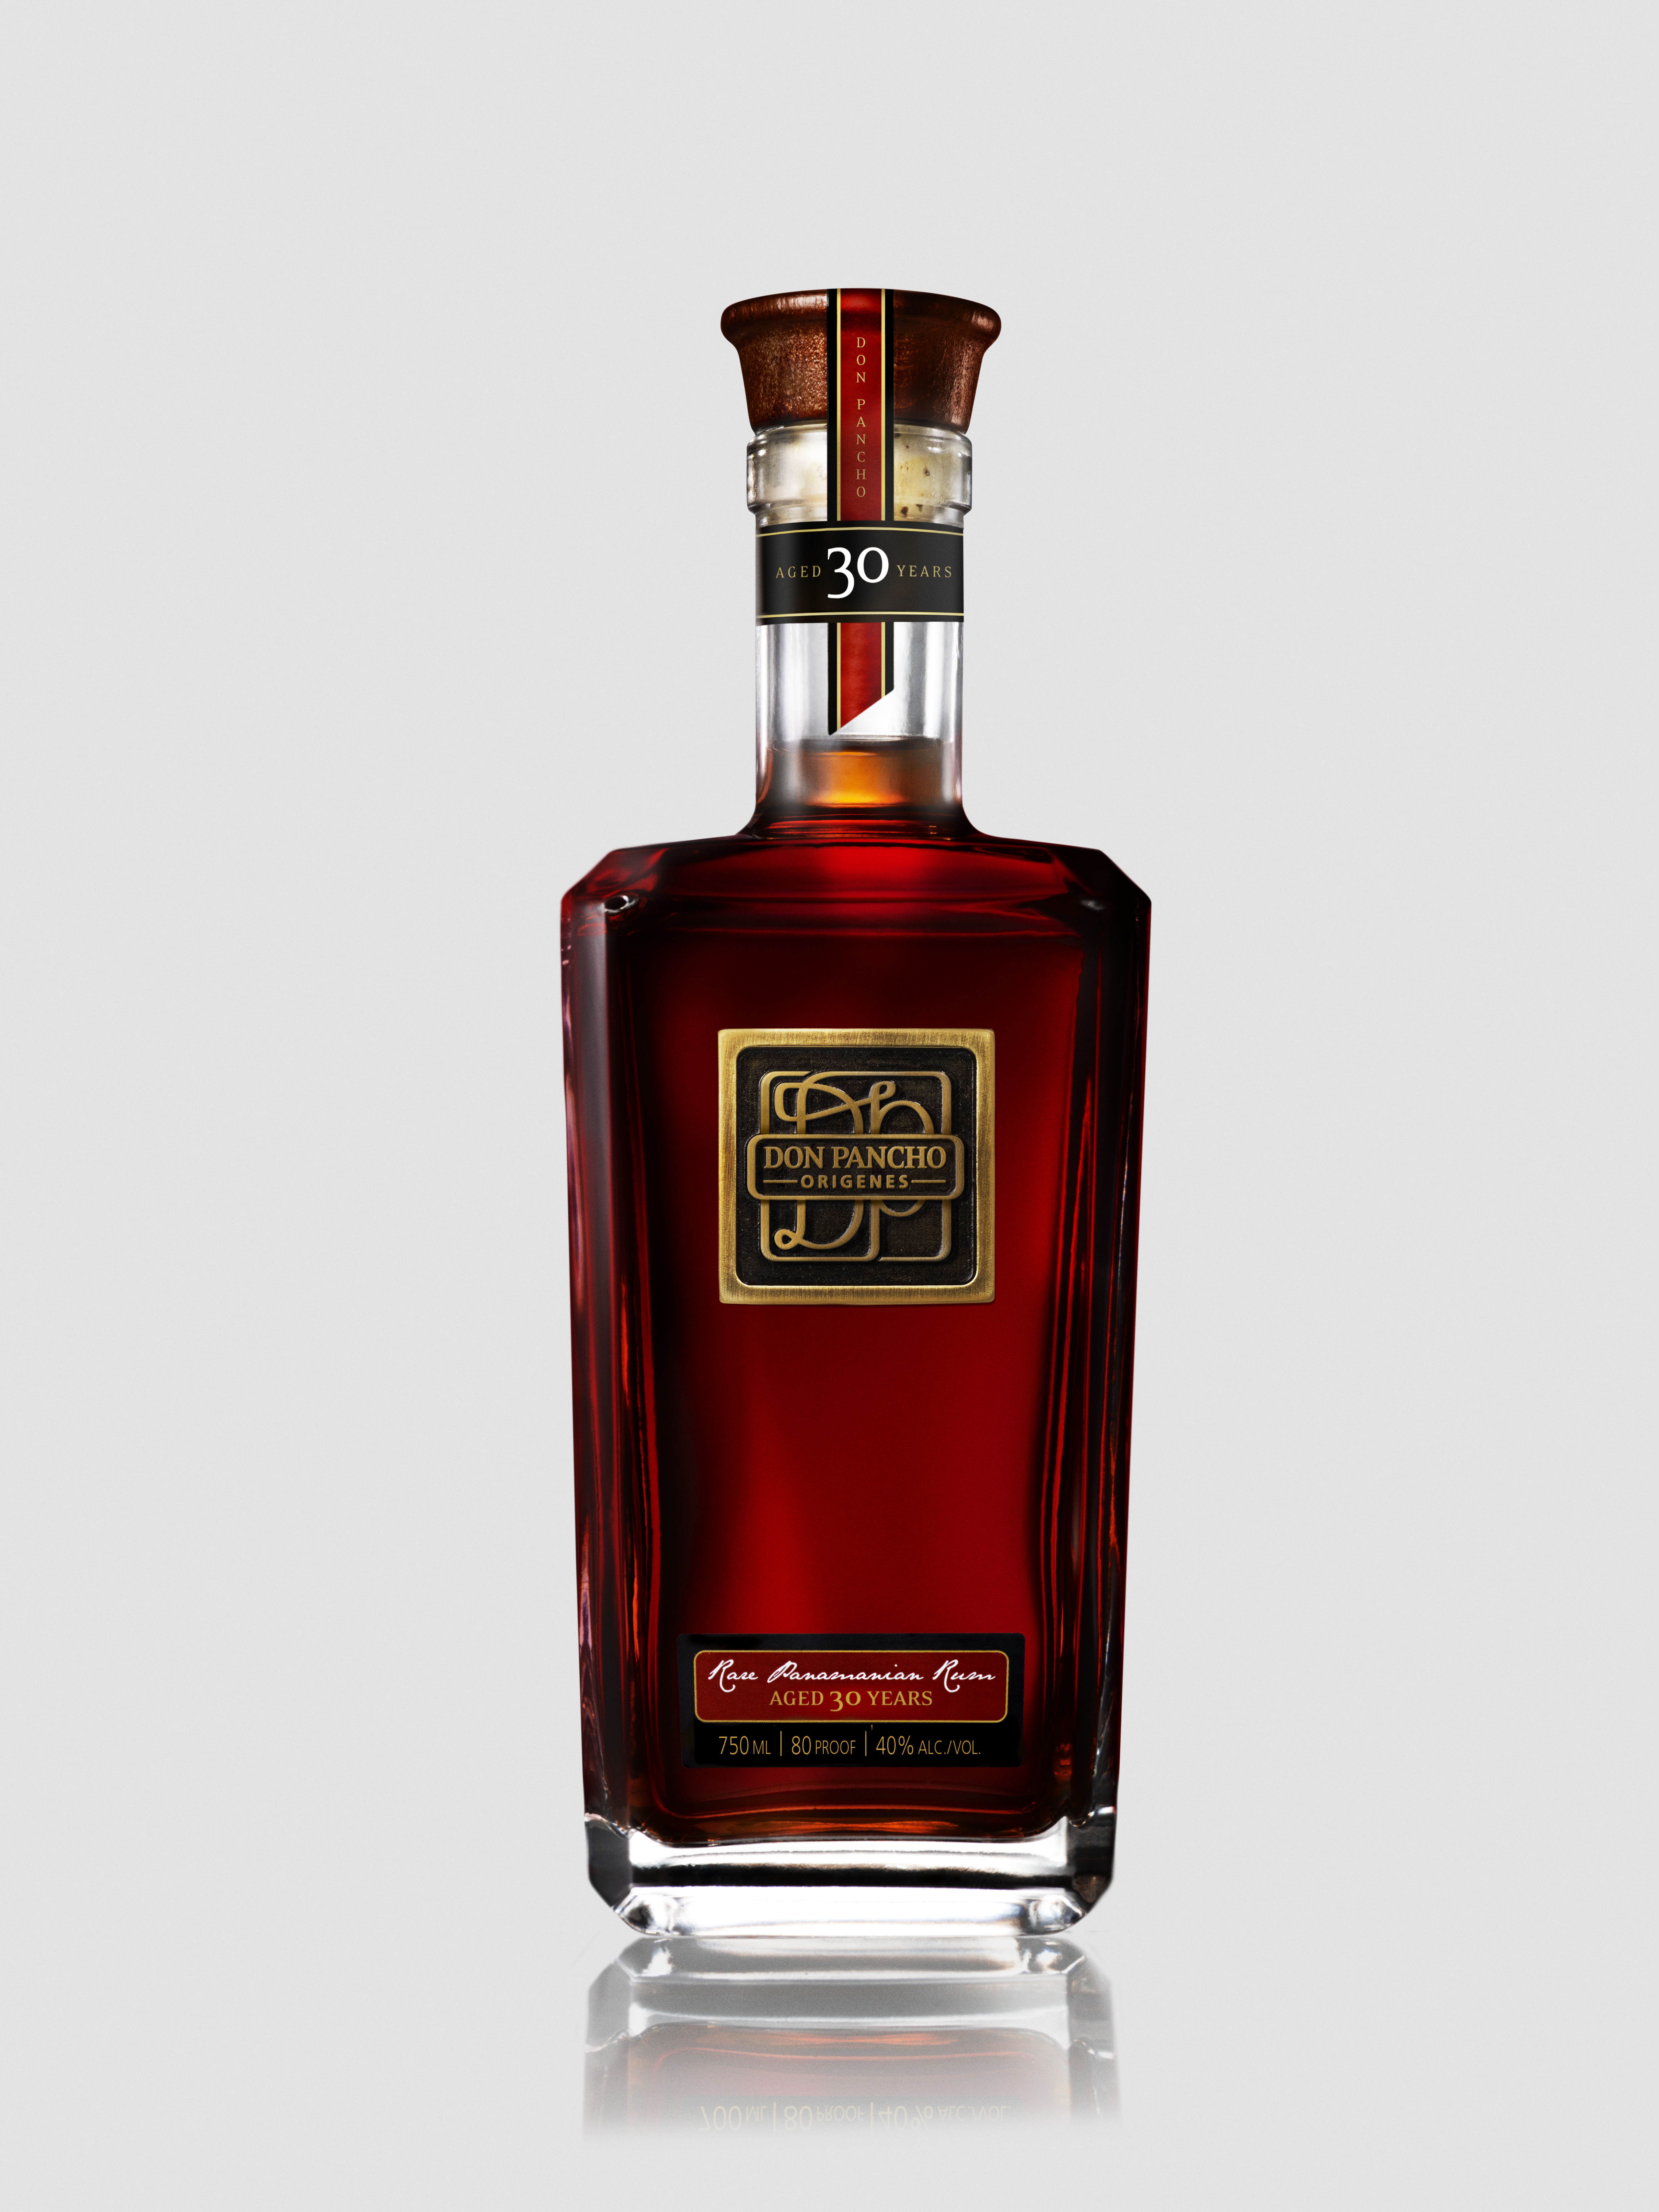 Don Pancho Origenes Rare Rum 30 Years Old